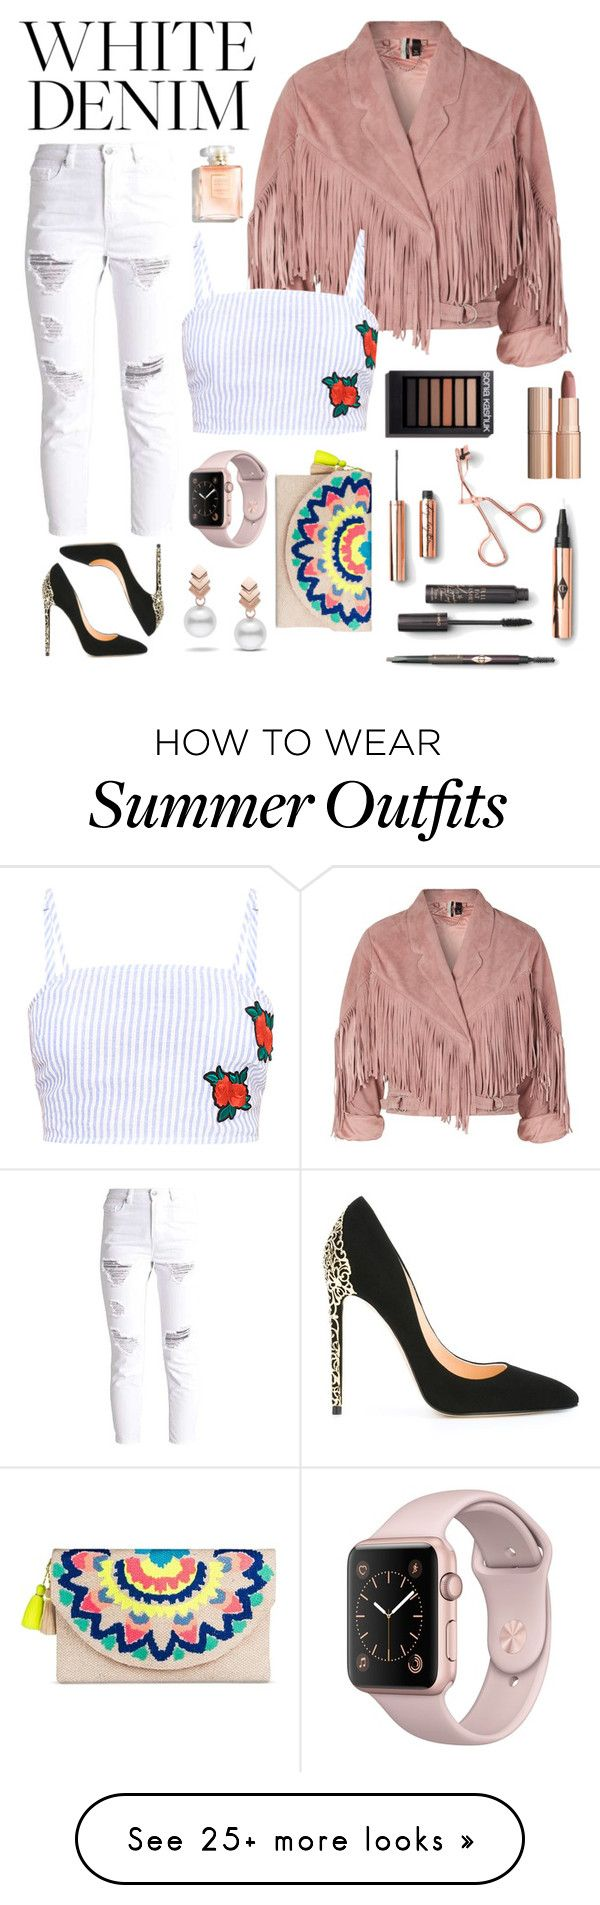 """white denim outfit"" by nidyati on Polyvore featuring Cerasella Milano..."